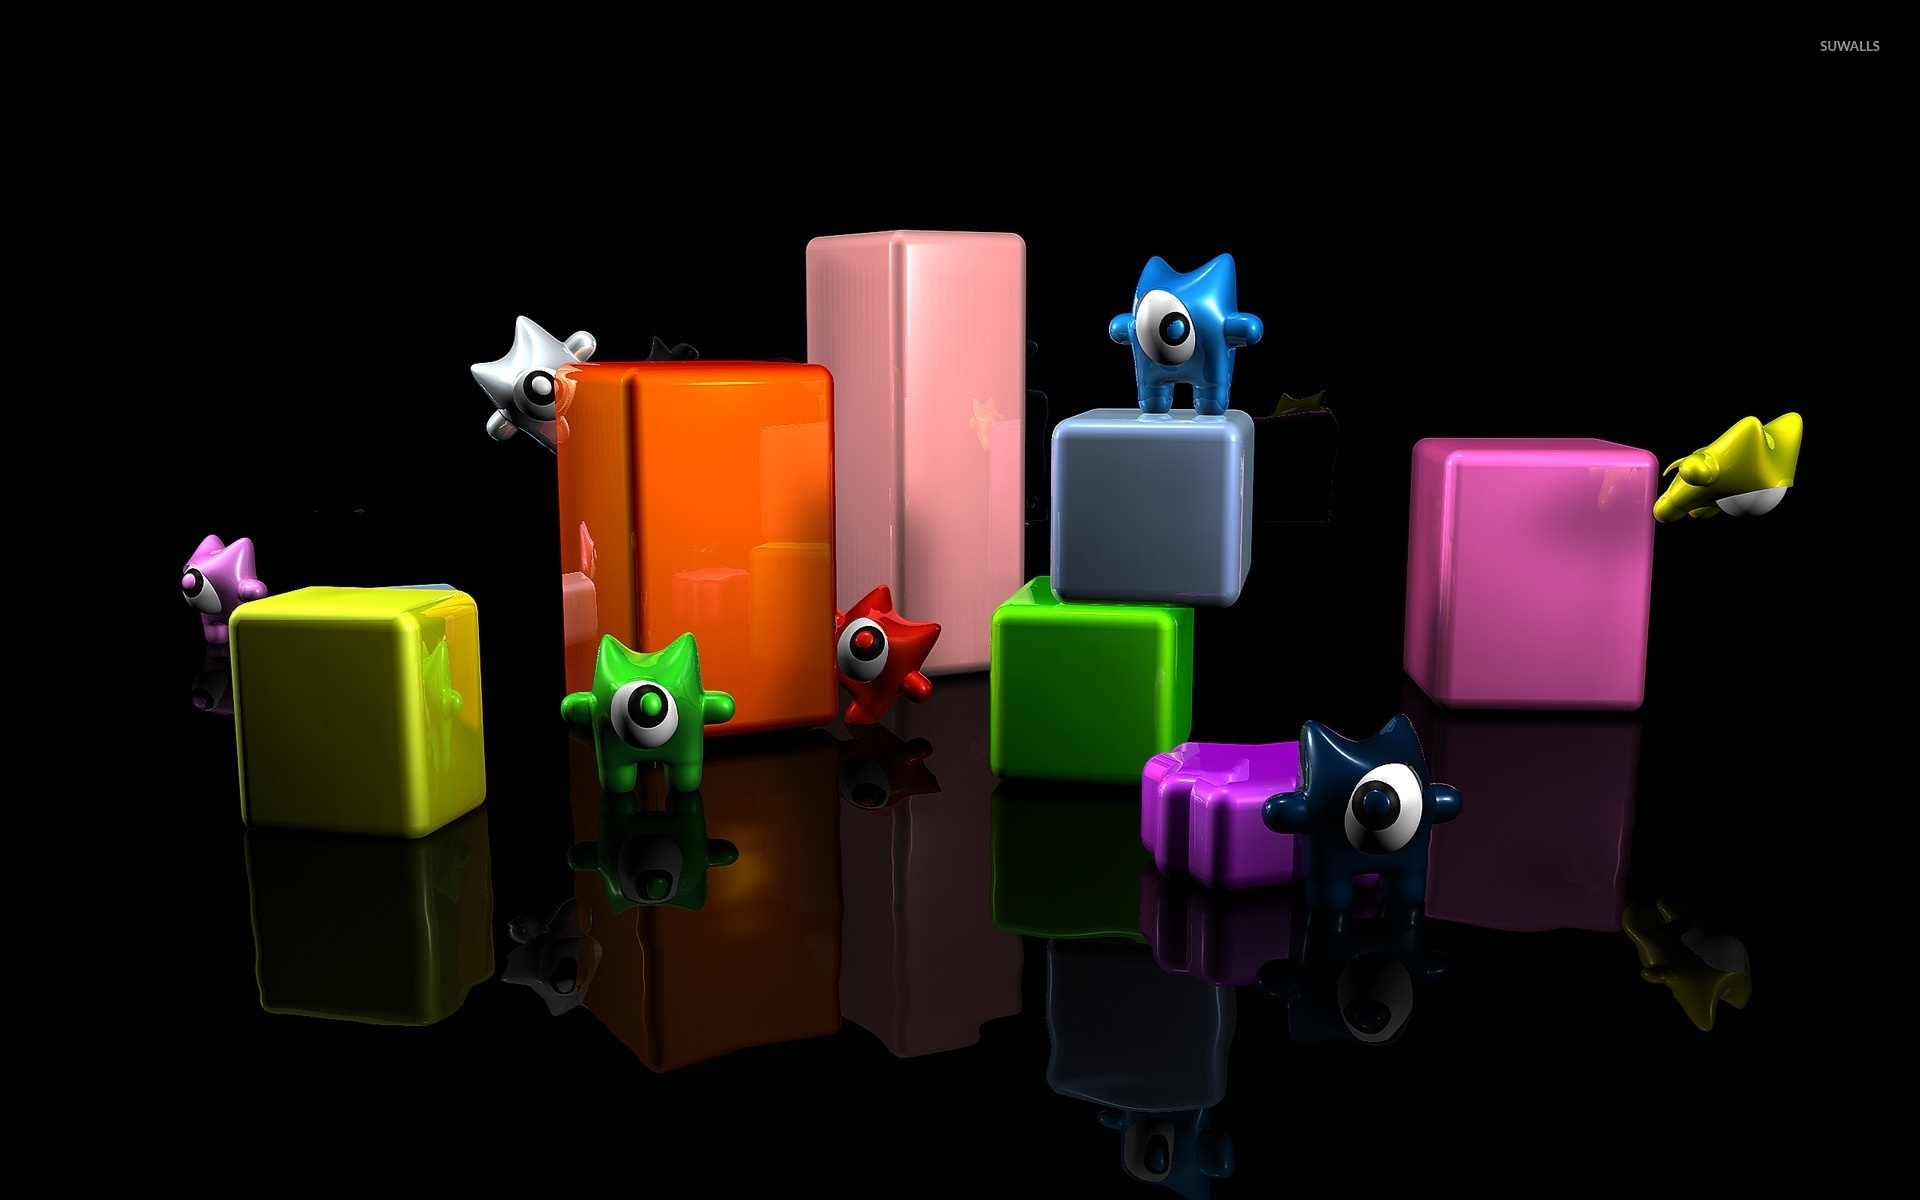 cute monsters on cuboids wallpaper - 3d wallpapers - #24719